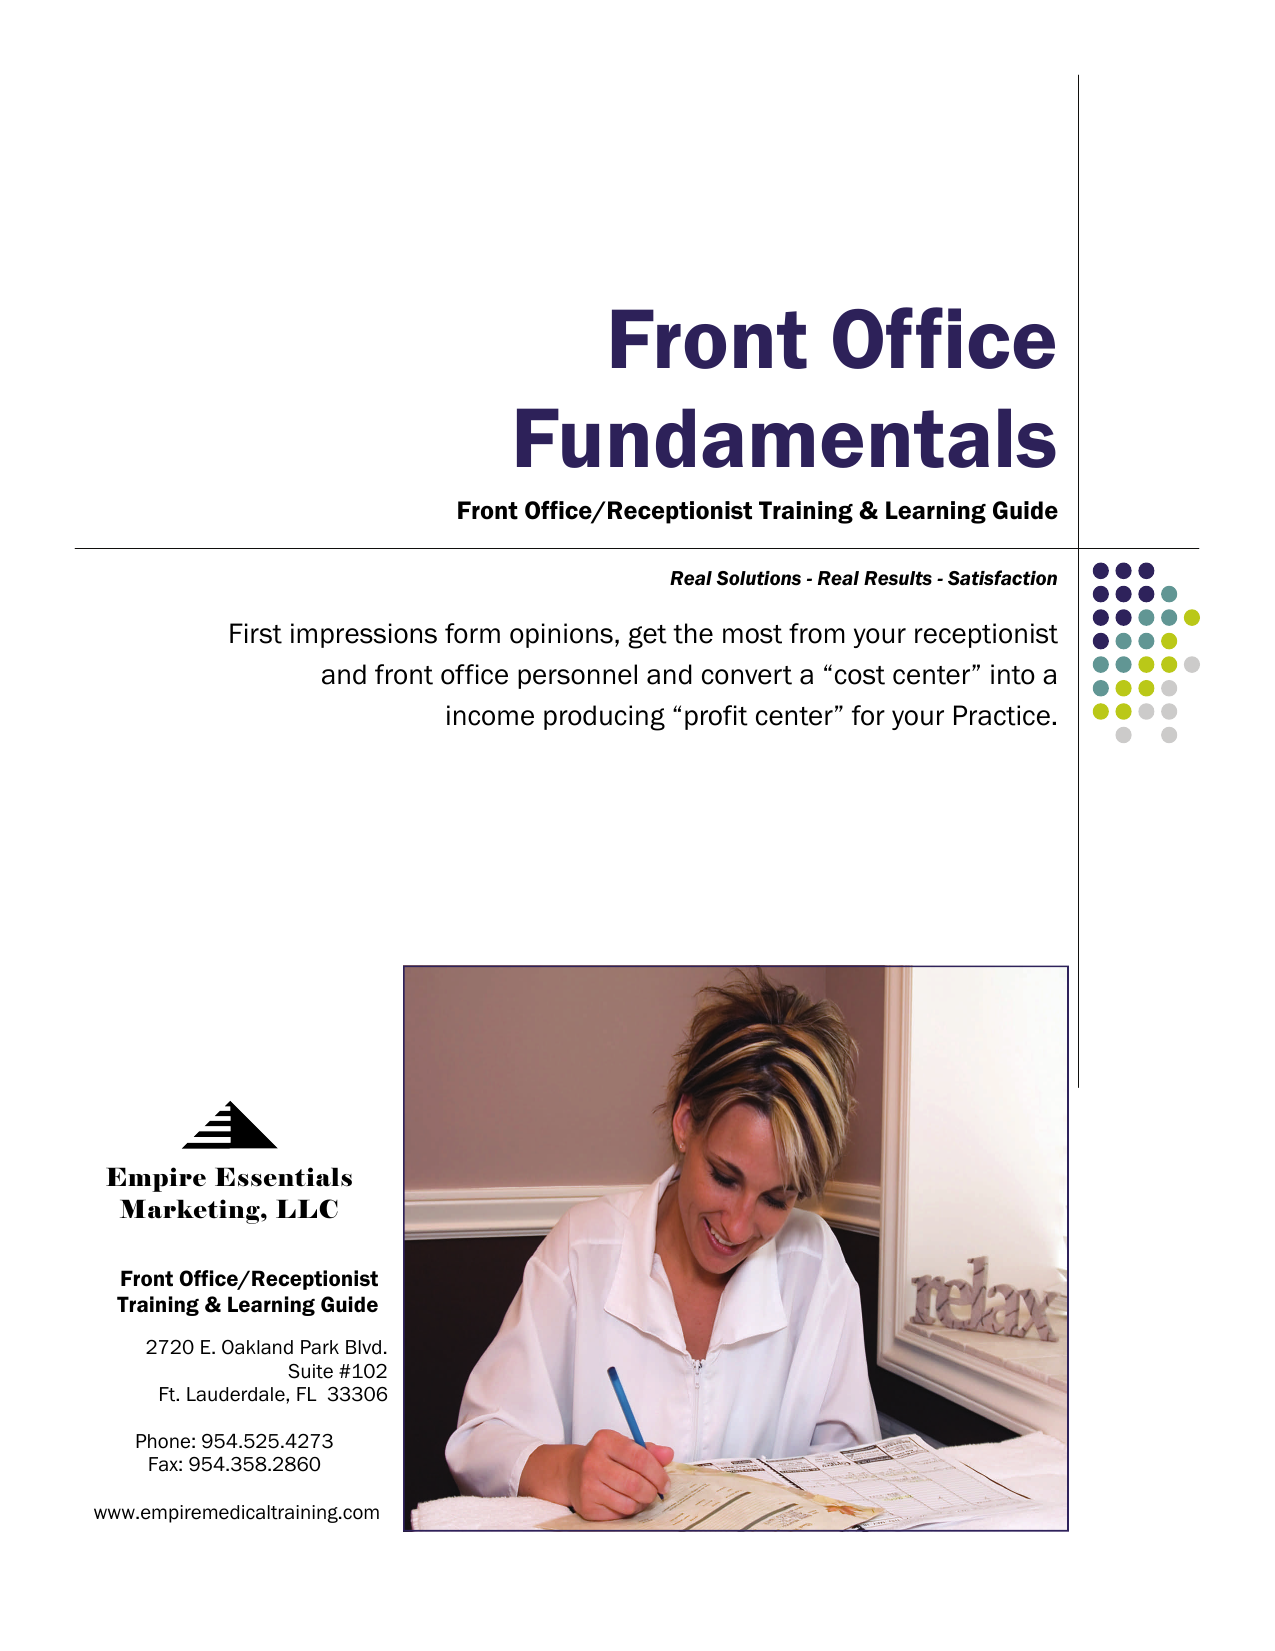 Front Office Fundamentals